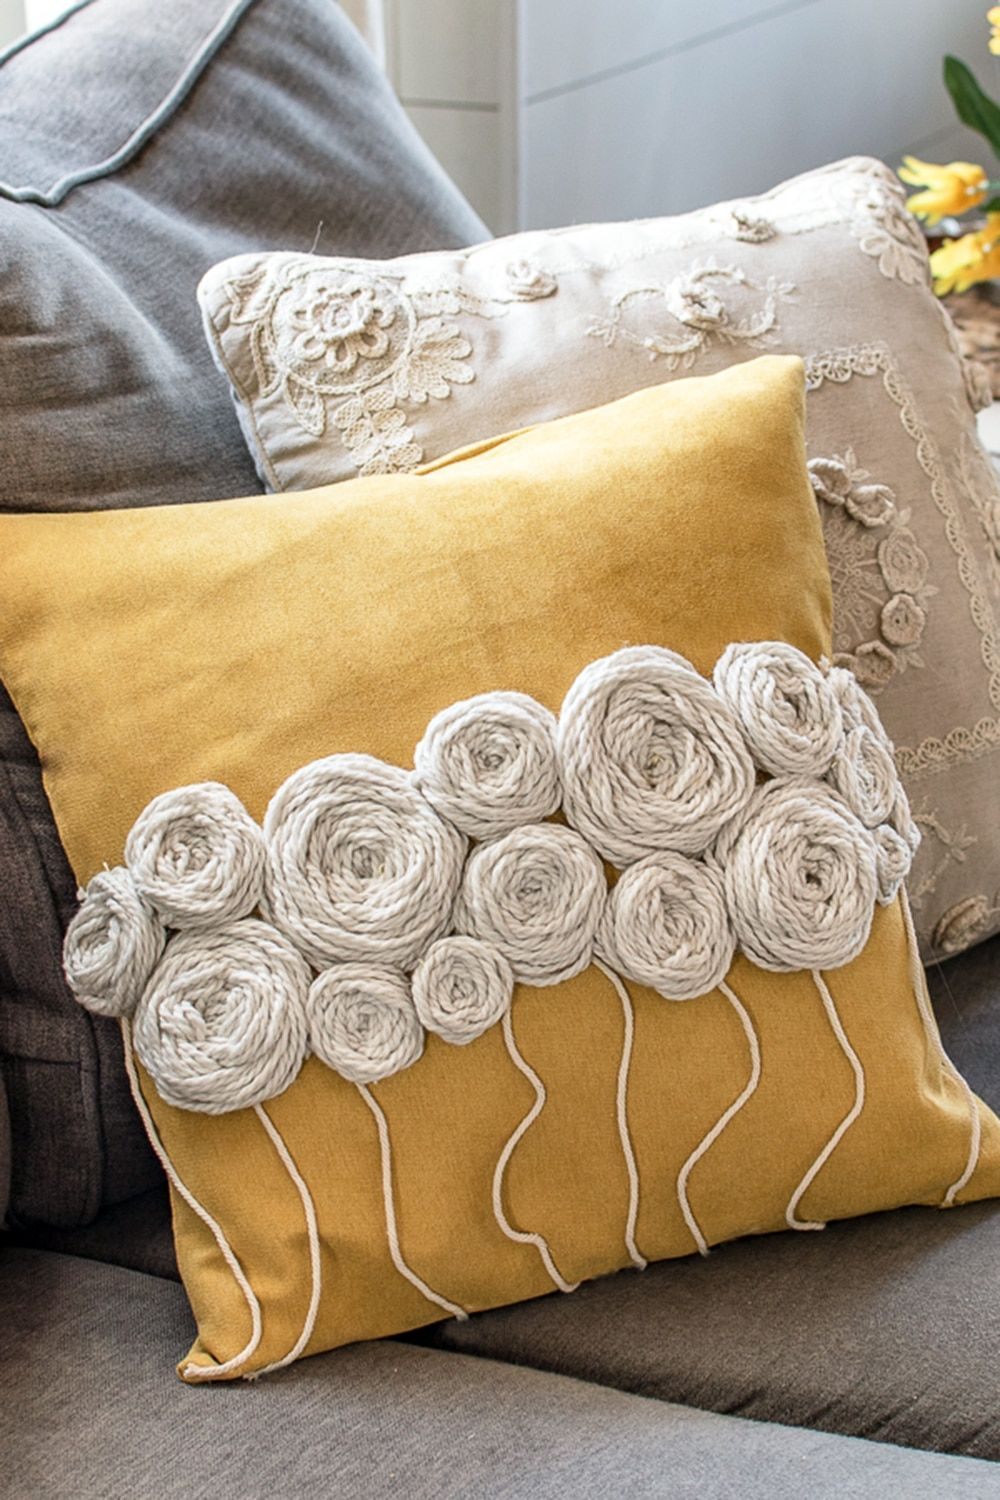 How to Make Wool Embroidery Flowers to Perk up Plain Cushions -   18 diy pillows food ideas